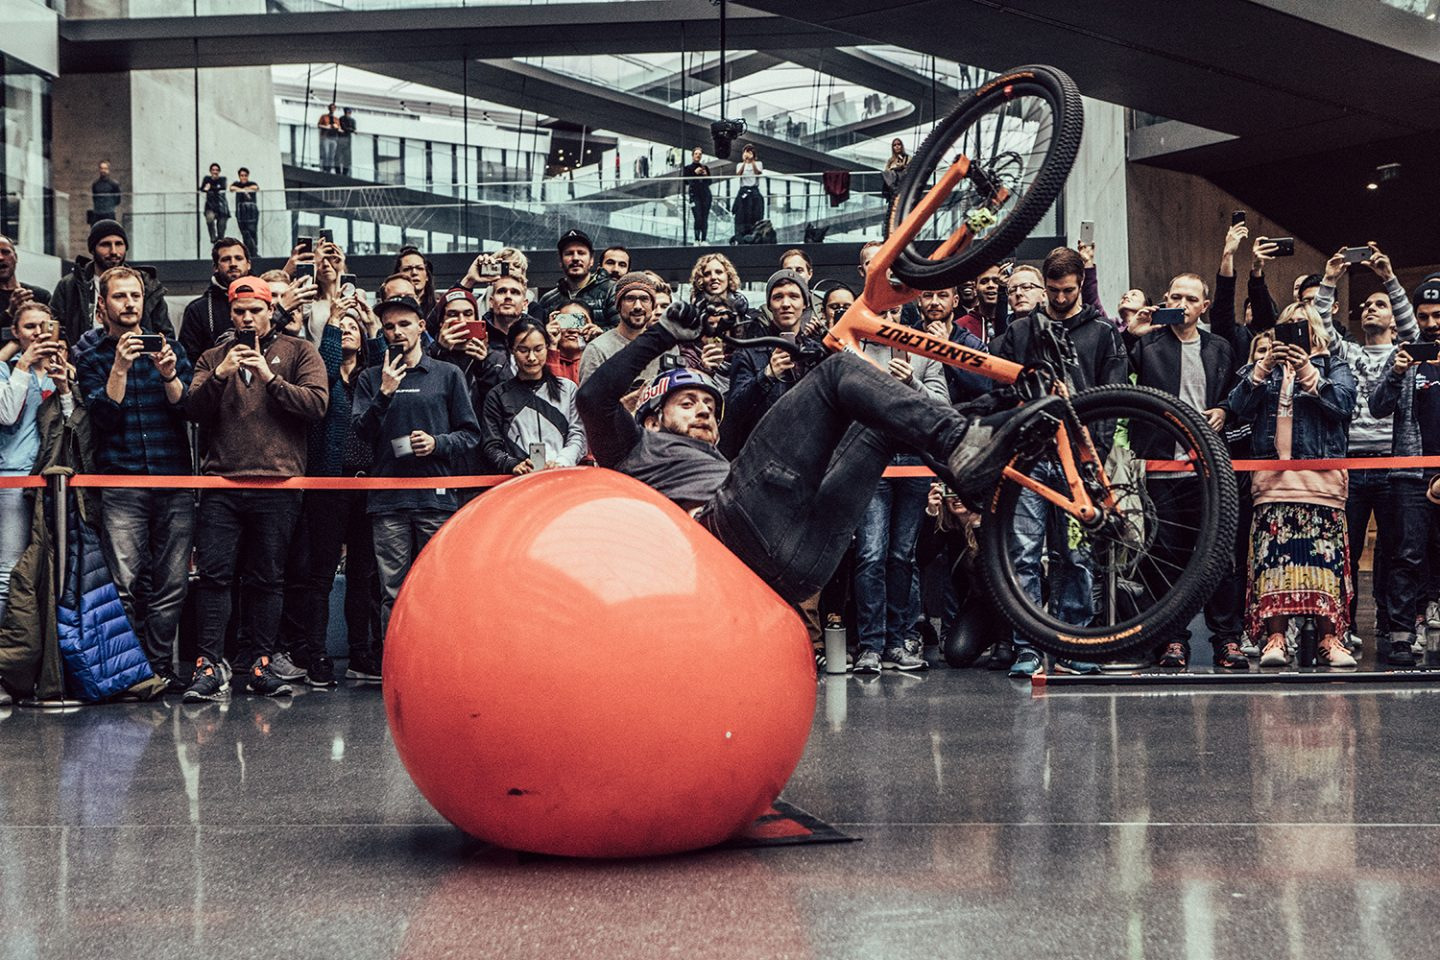 Mountainbike pro Danny Mac Askill is performing a trick on a ball with his bike at the adidas headquarter